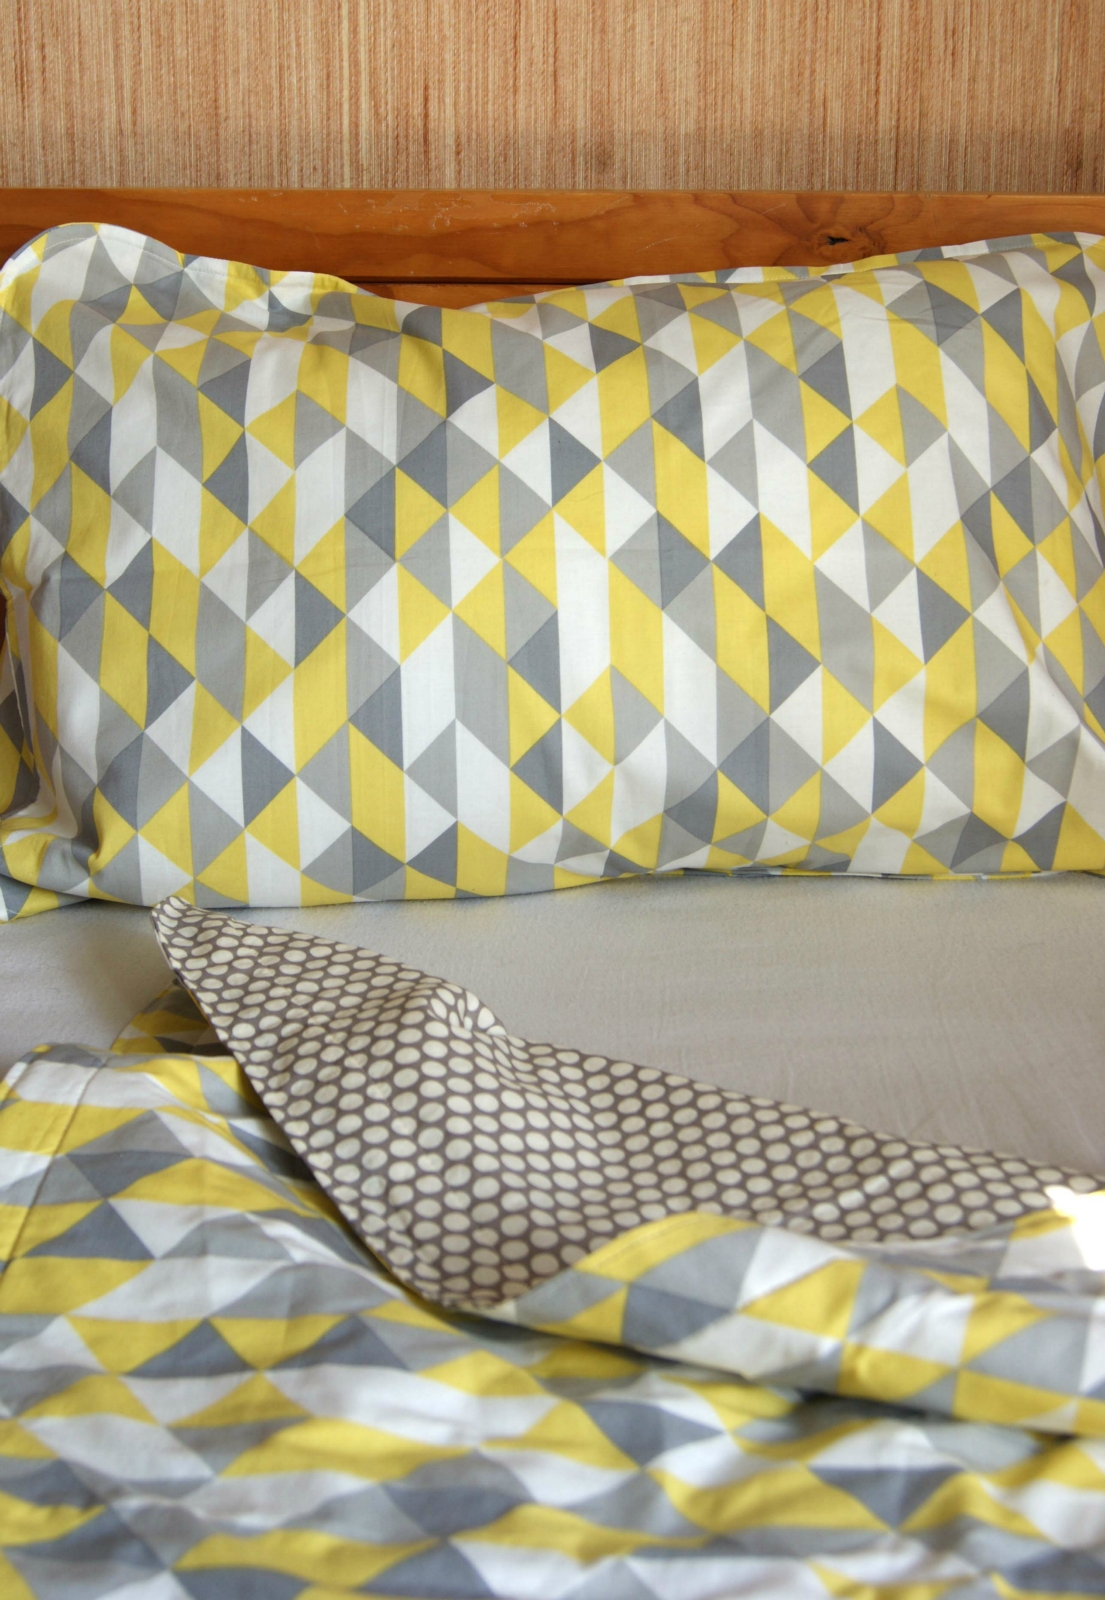 Organic Throw Blanket Or Single Bed Blanket Yellow And